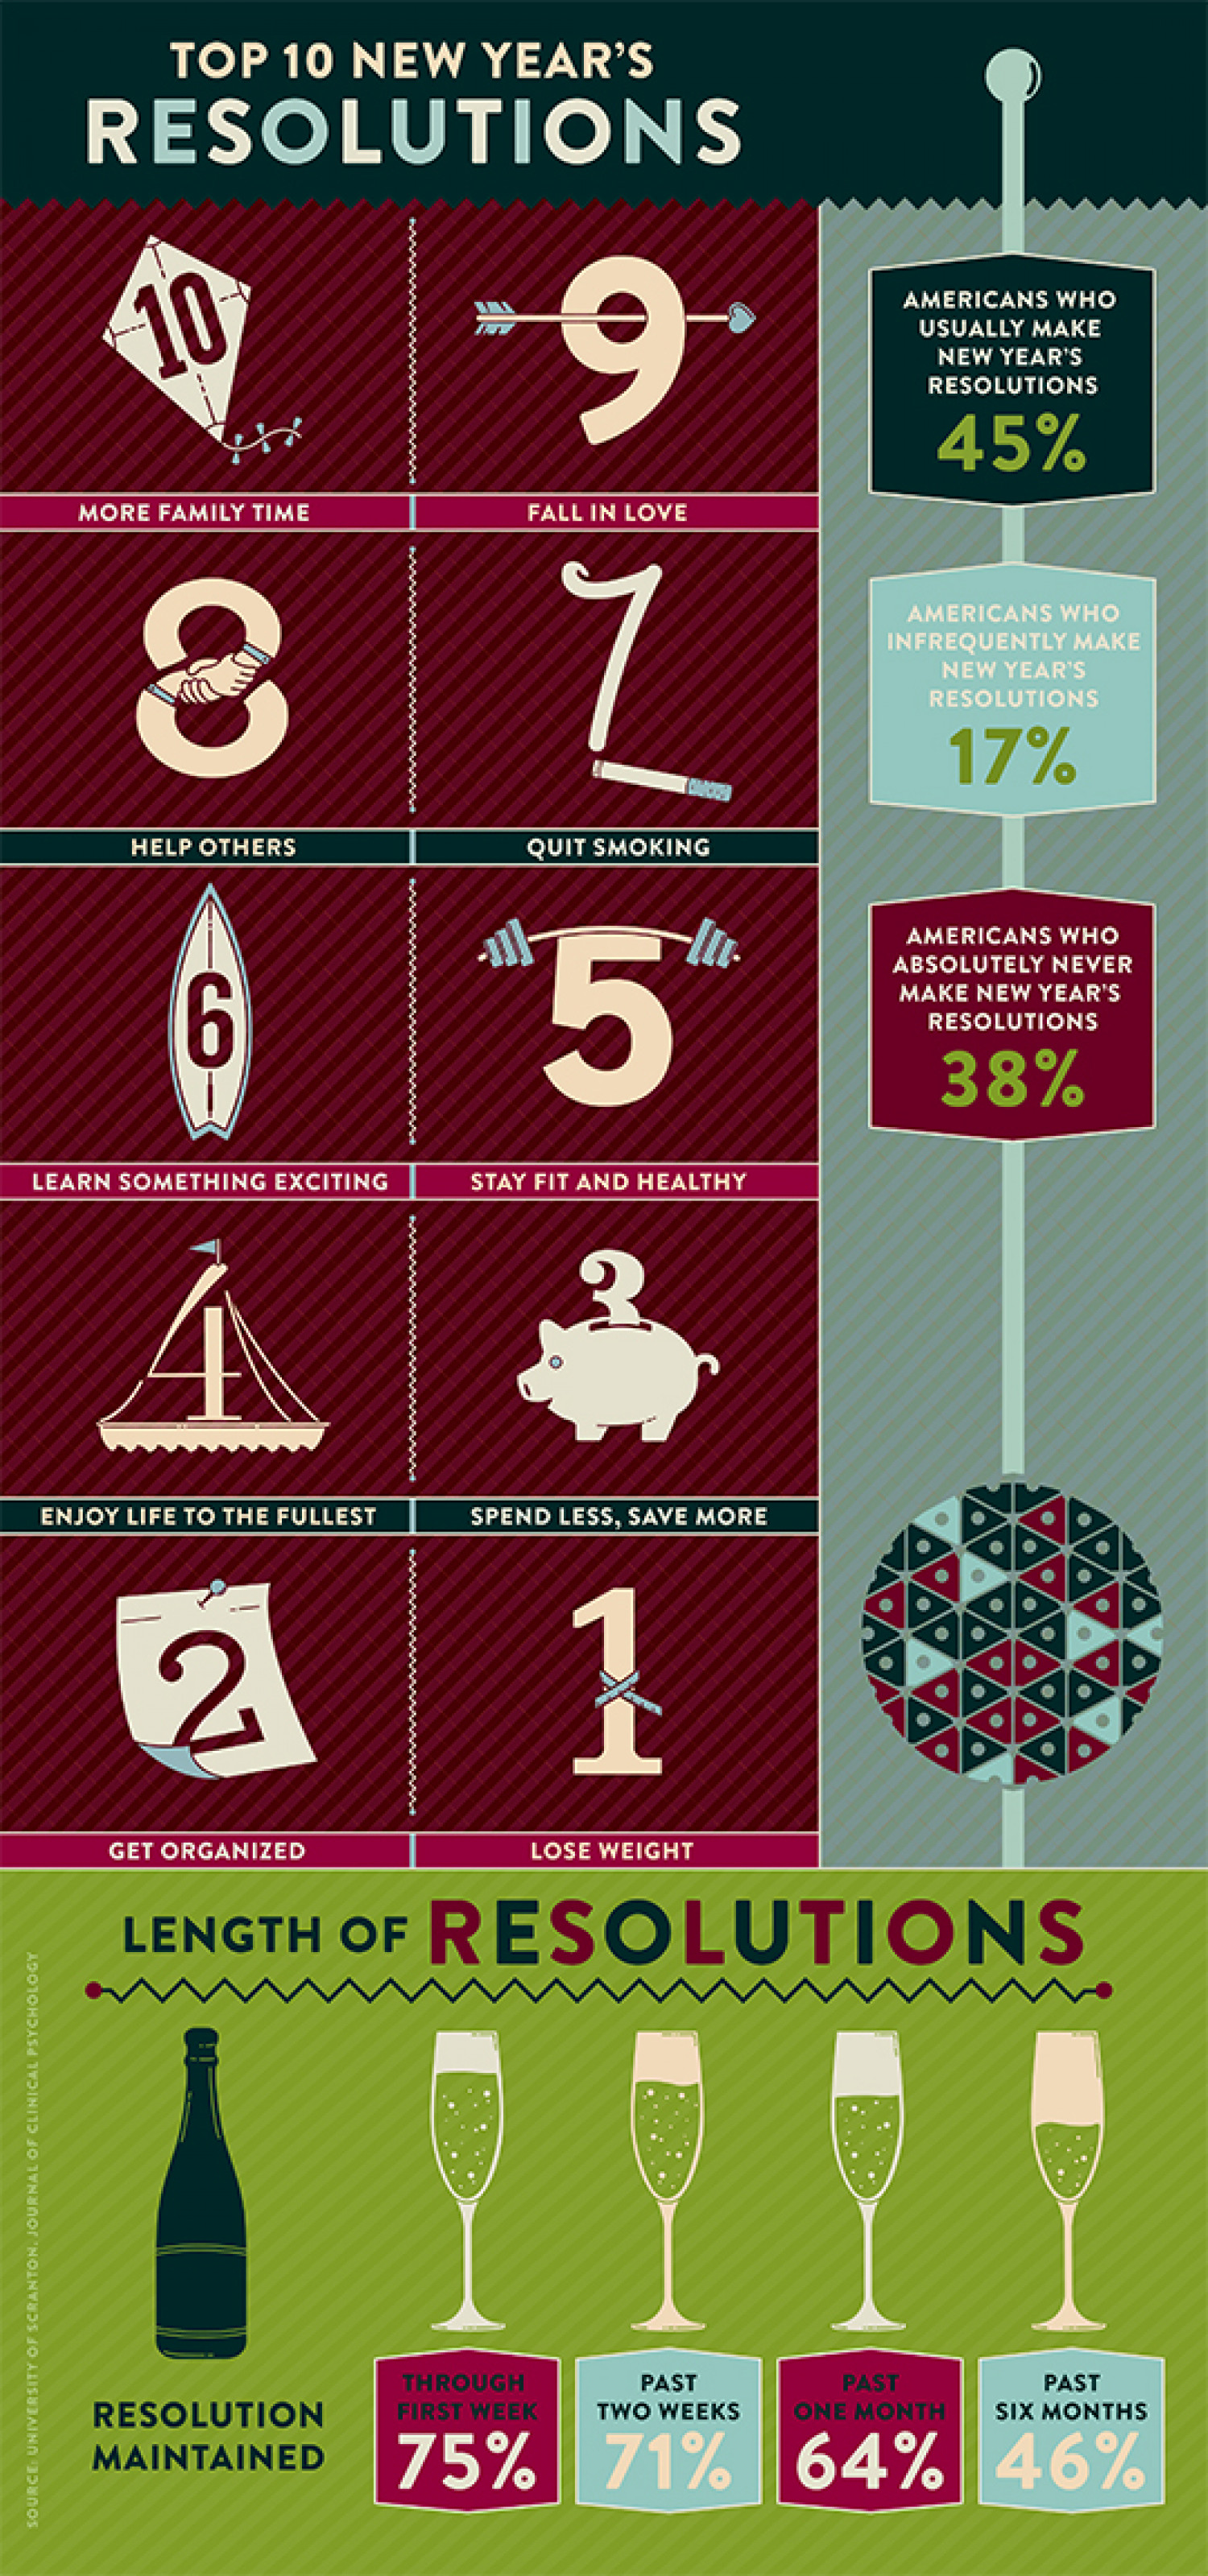 Top 10 New Year's Resolutions Infographic